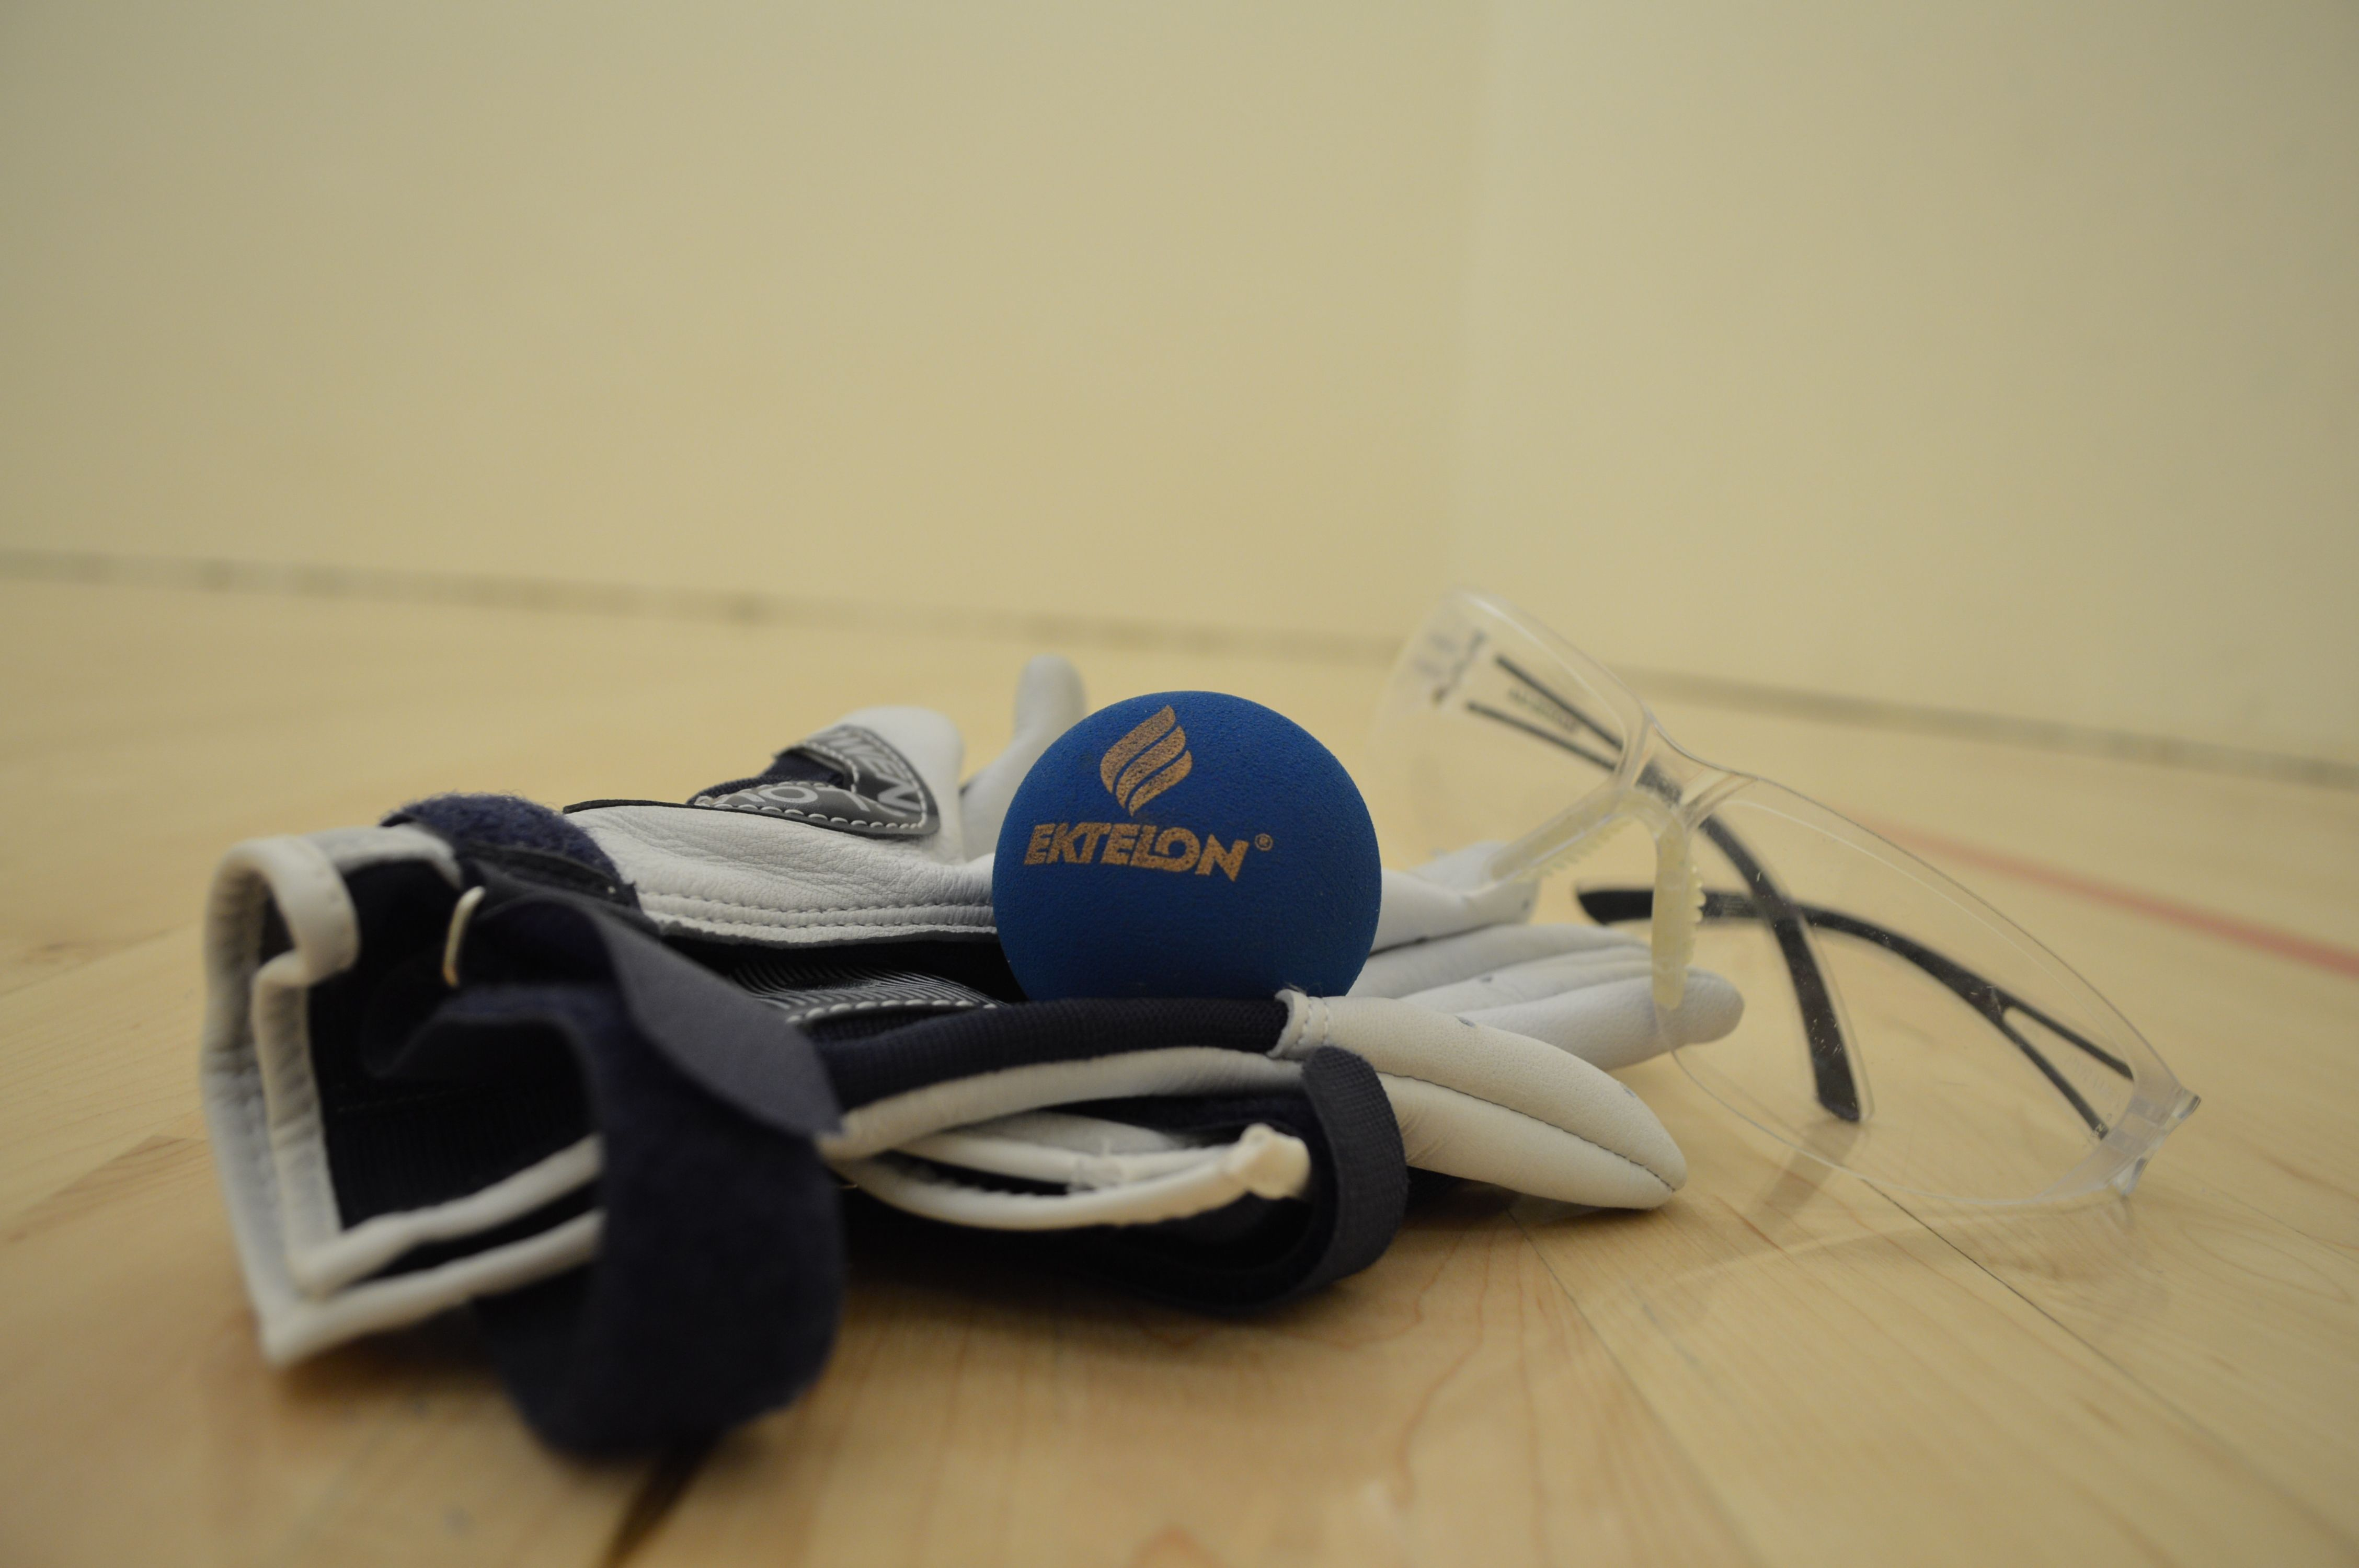 Come out and play on our four handballracquetball courts